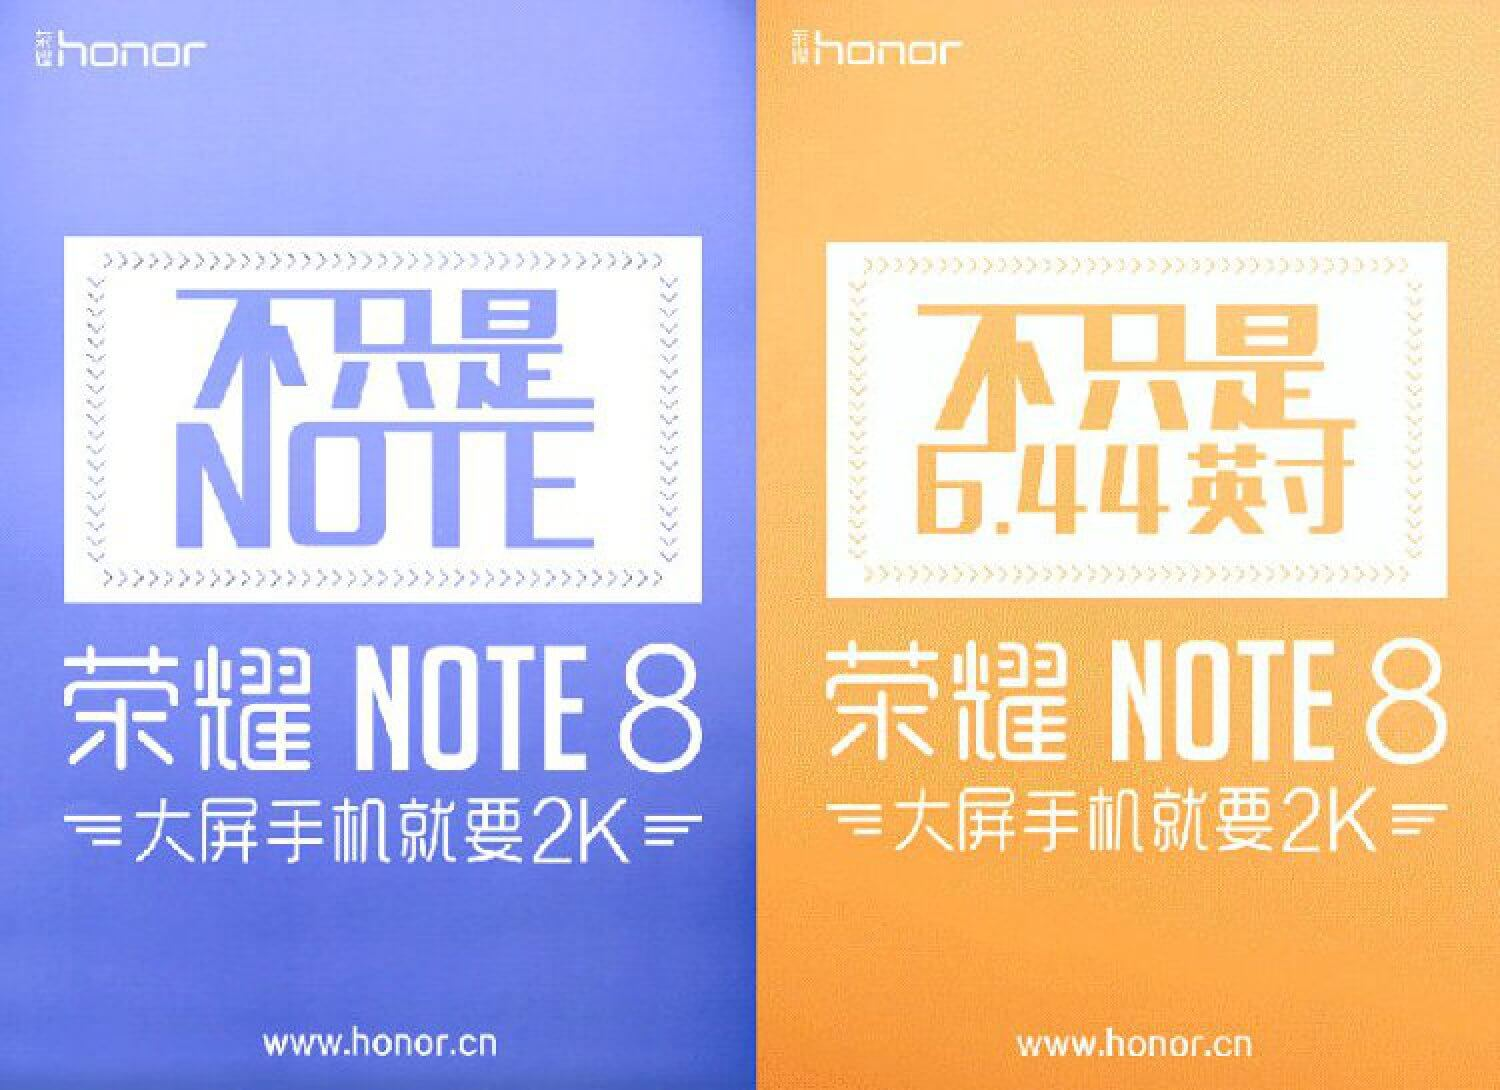 Тизер Huawei honor Note 8